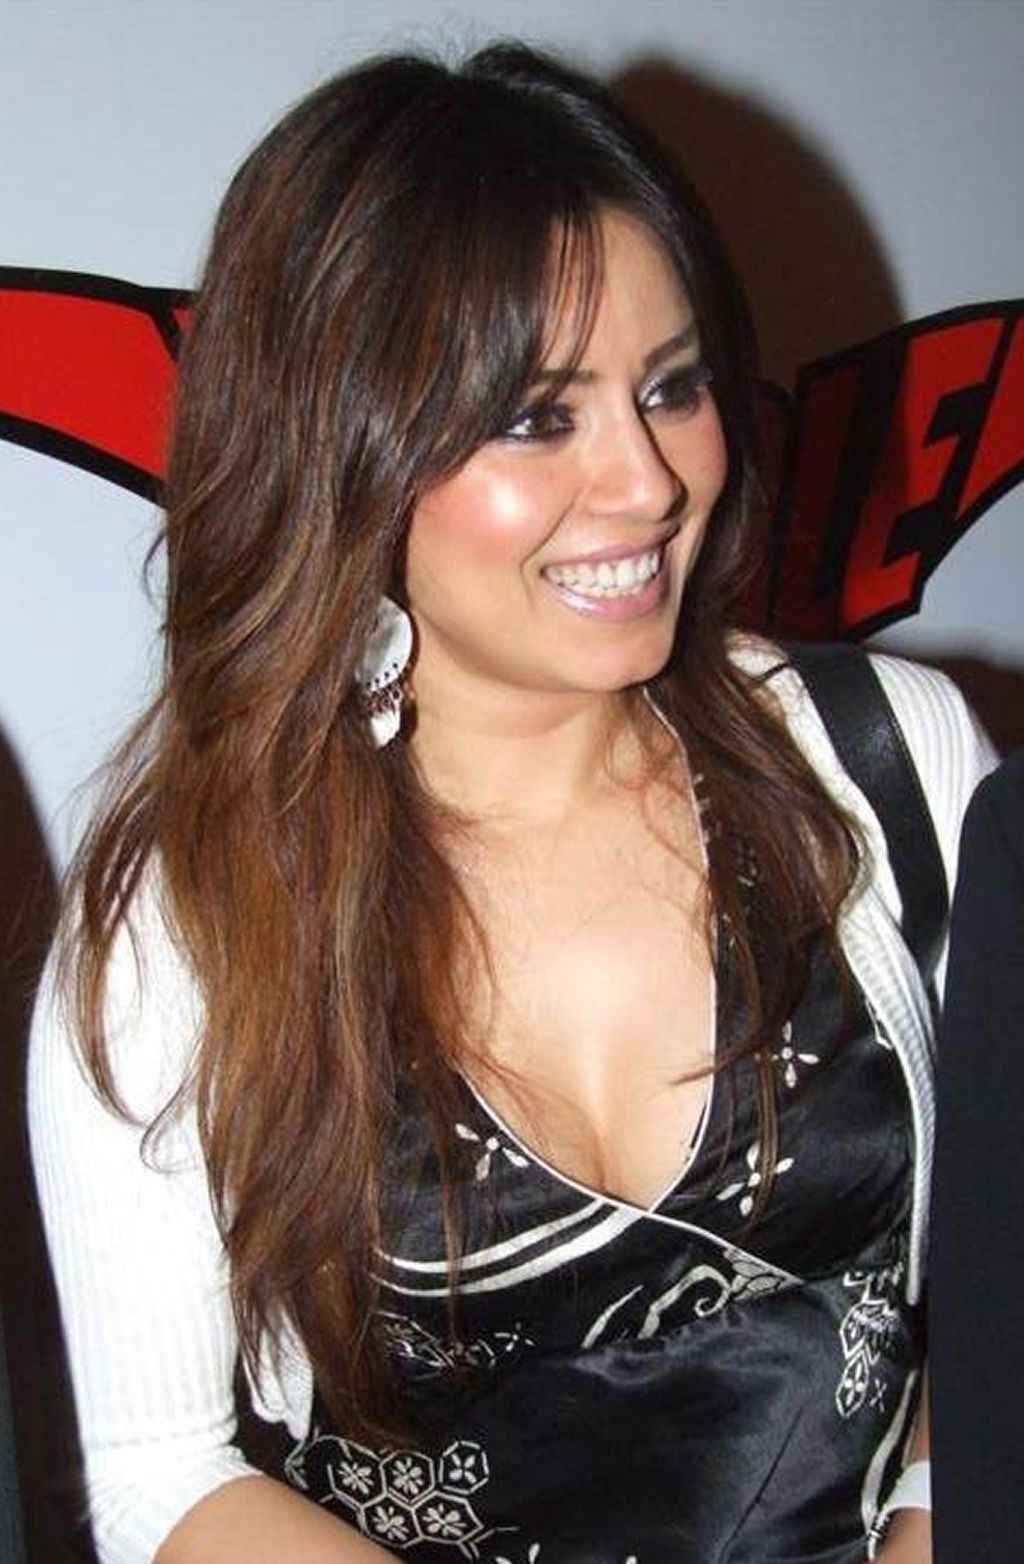 Mahima chaudhary hot photo detail